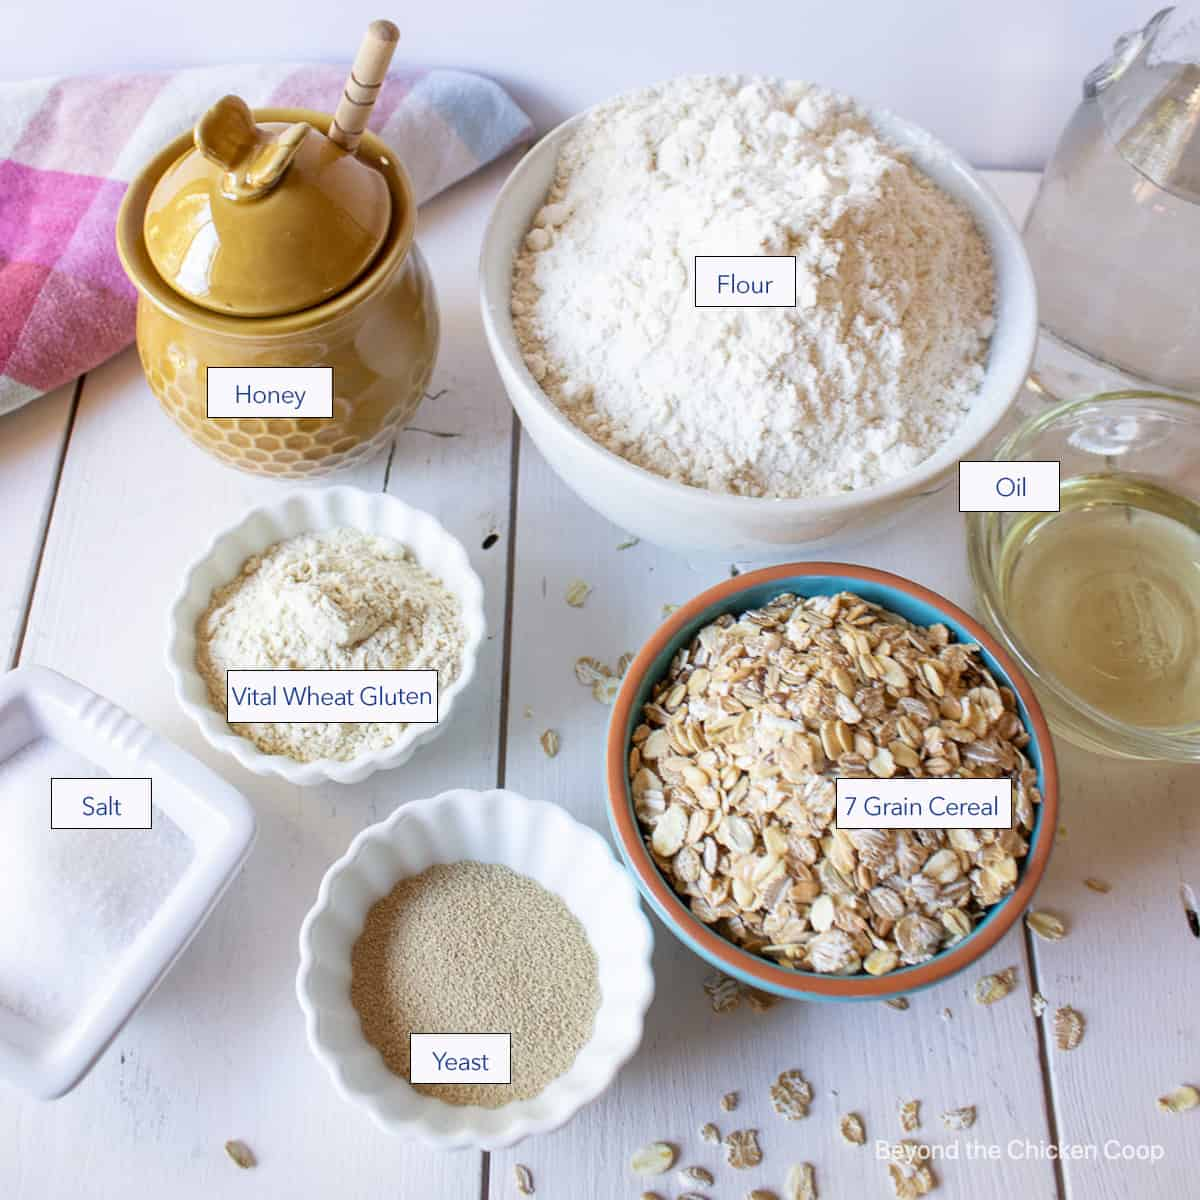 Small bowls filled with flour, oats and other ingredients.